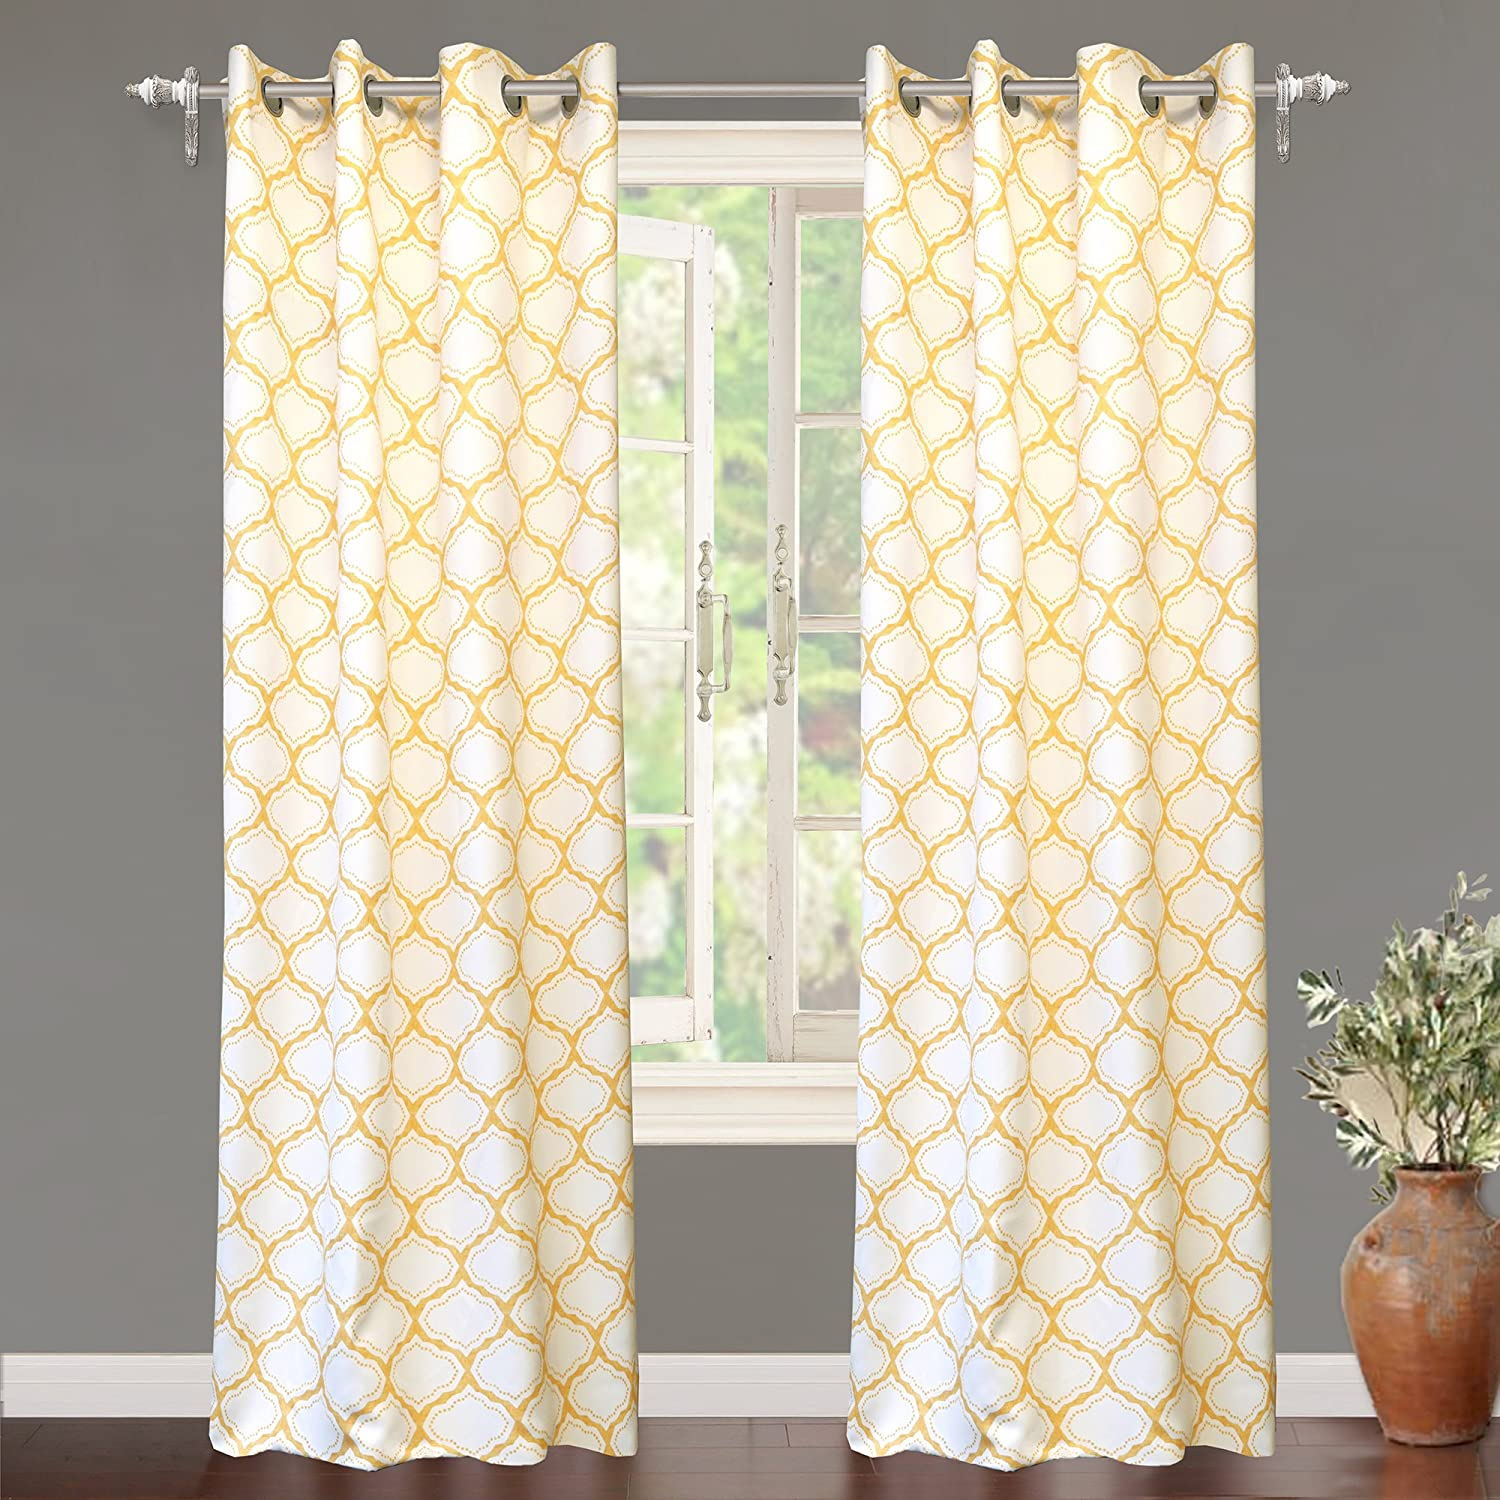 DriftAway Drift Away Geo Trellis Room Darkening Grommet Unlined Window Curtains, Set of Two Panels